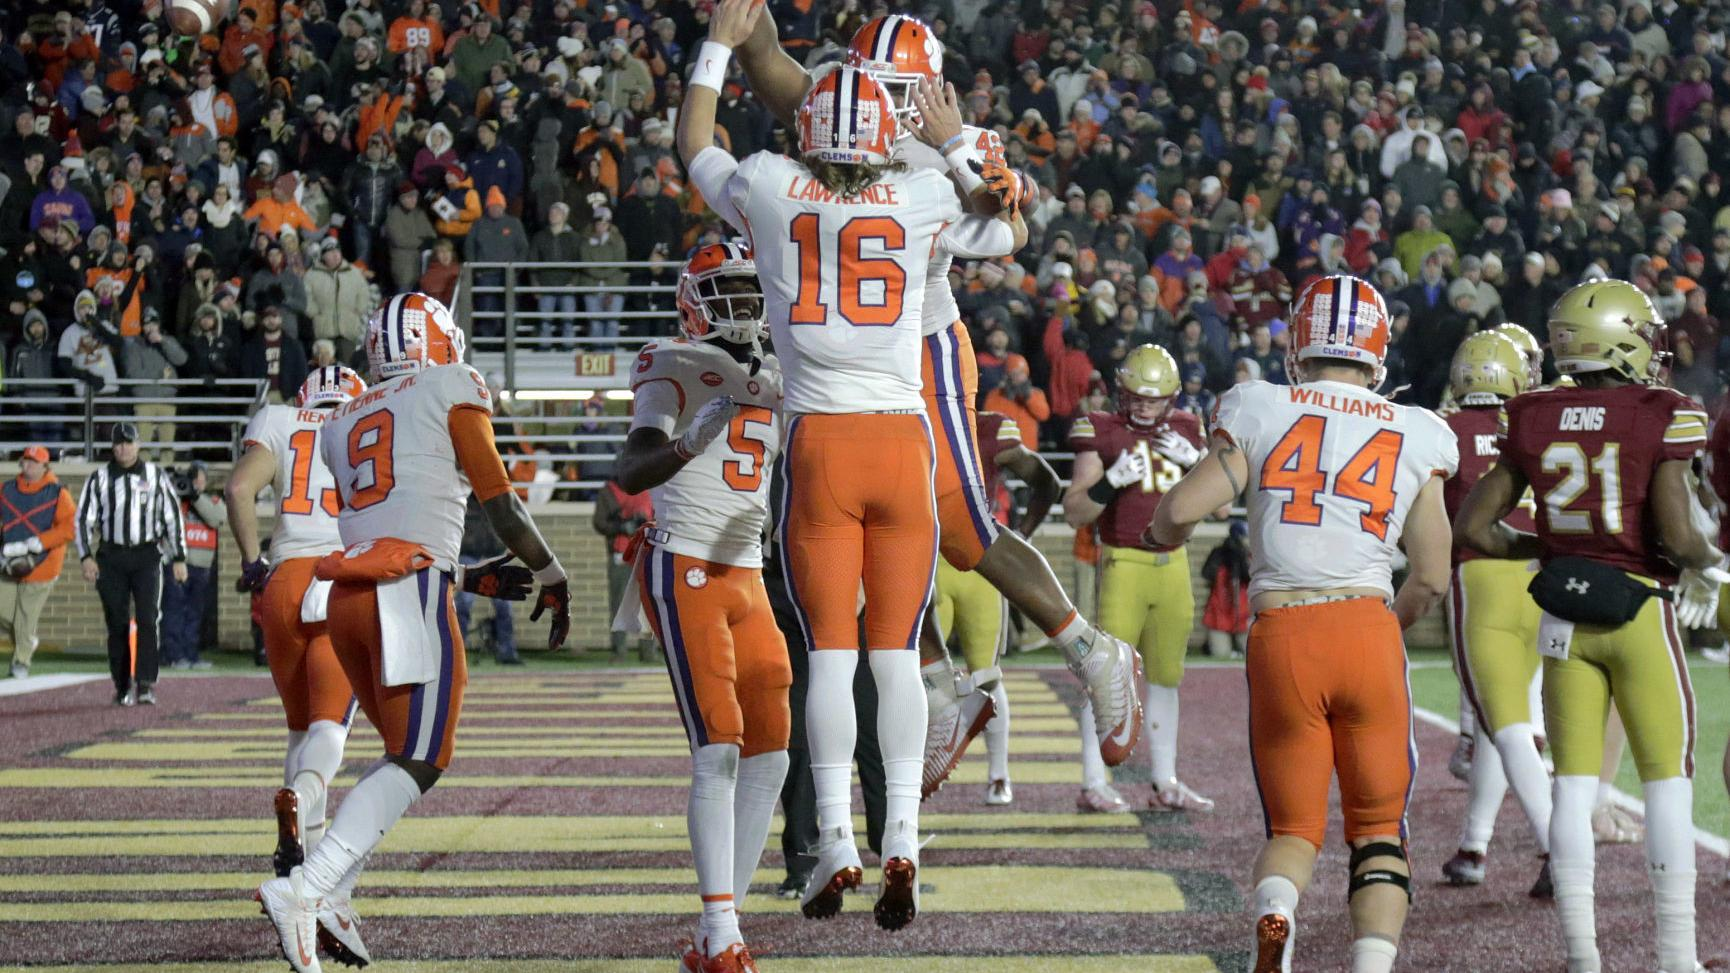 CLEMSON FOOTBALL: Lawrence weathers the cold